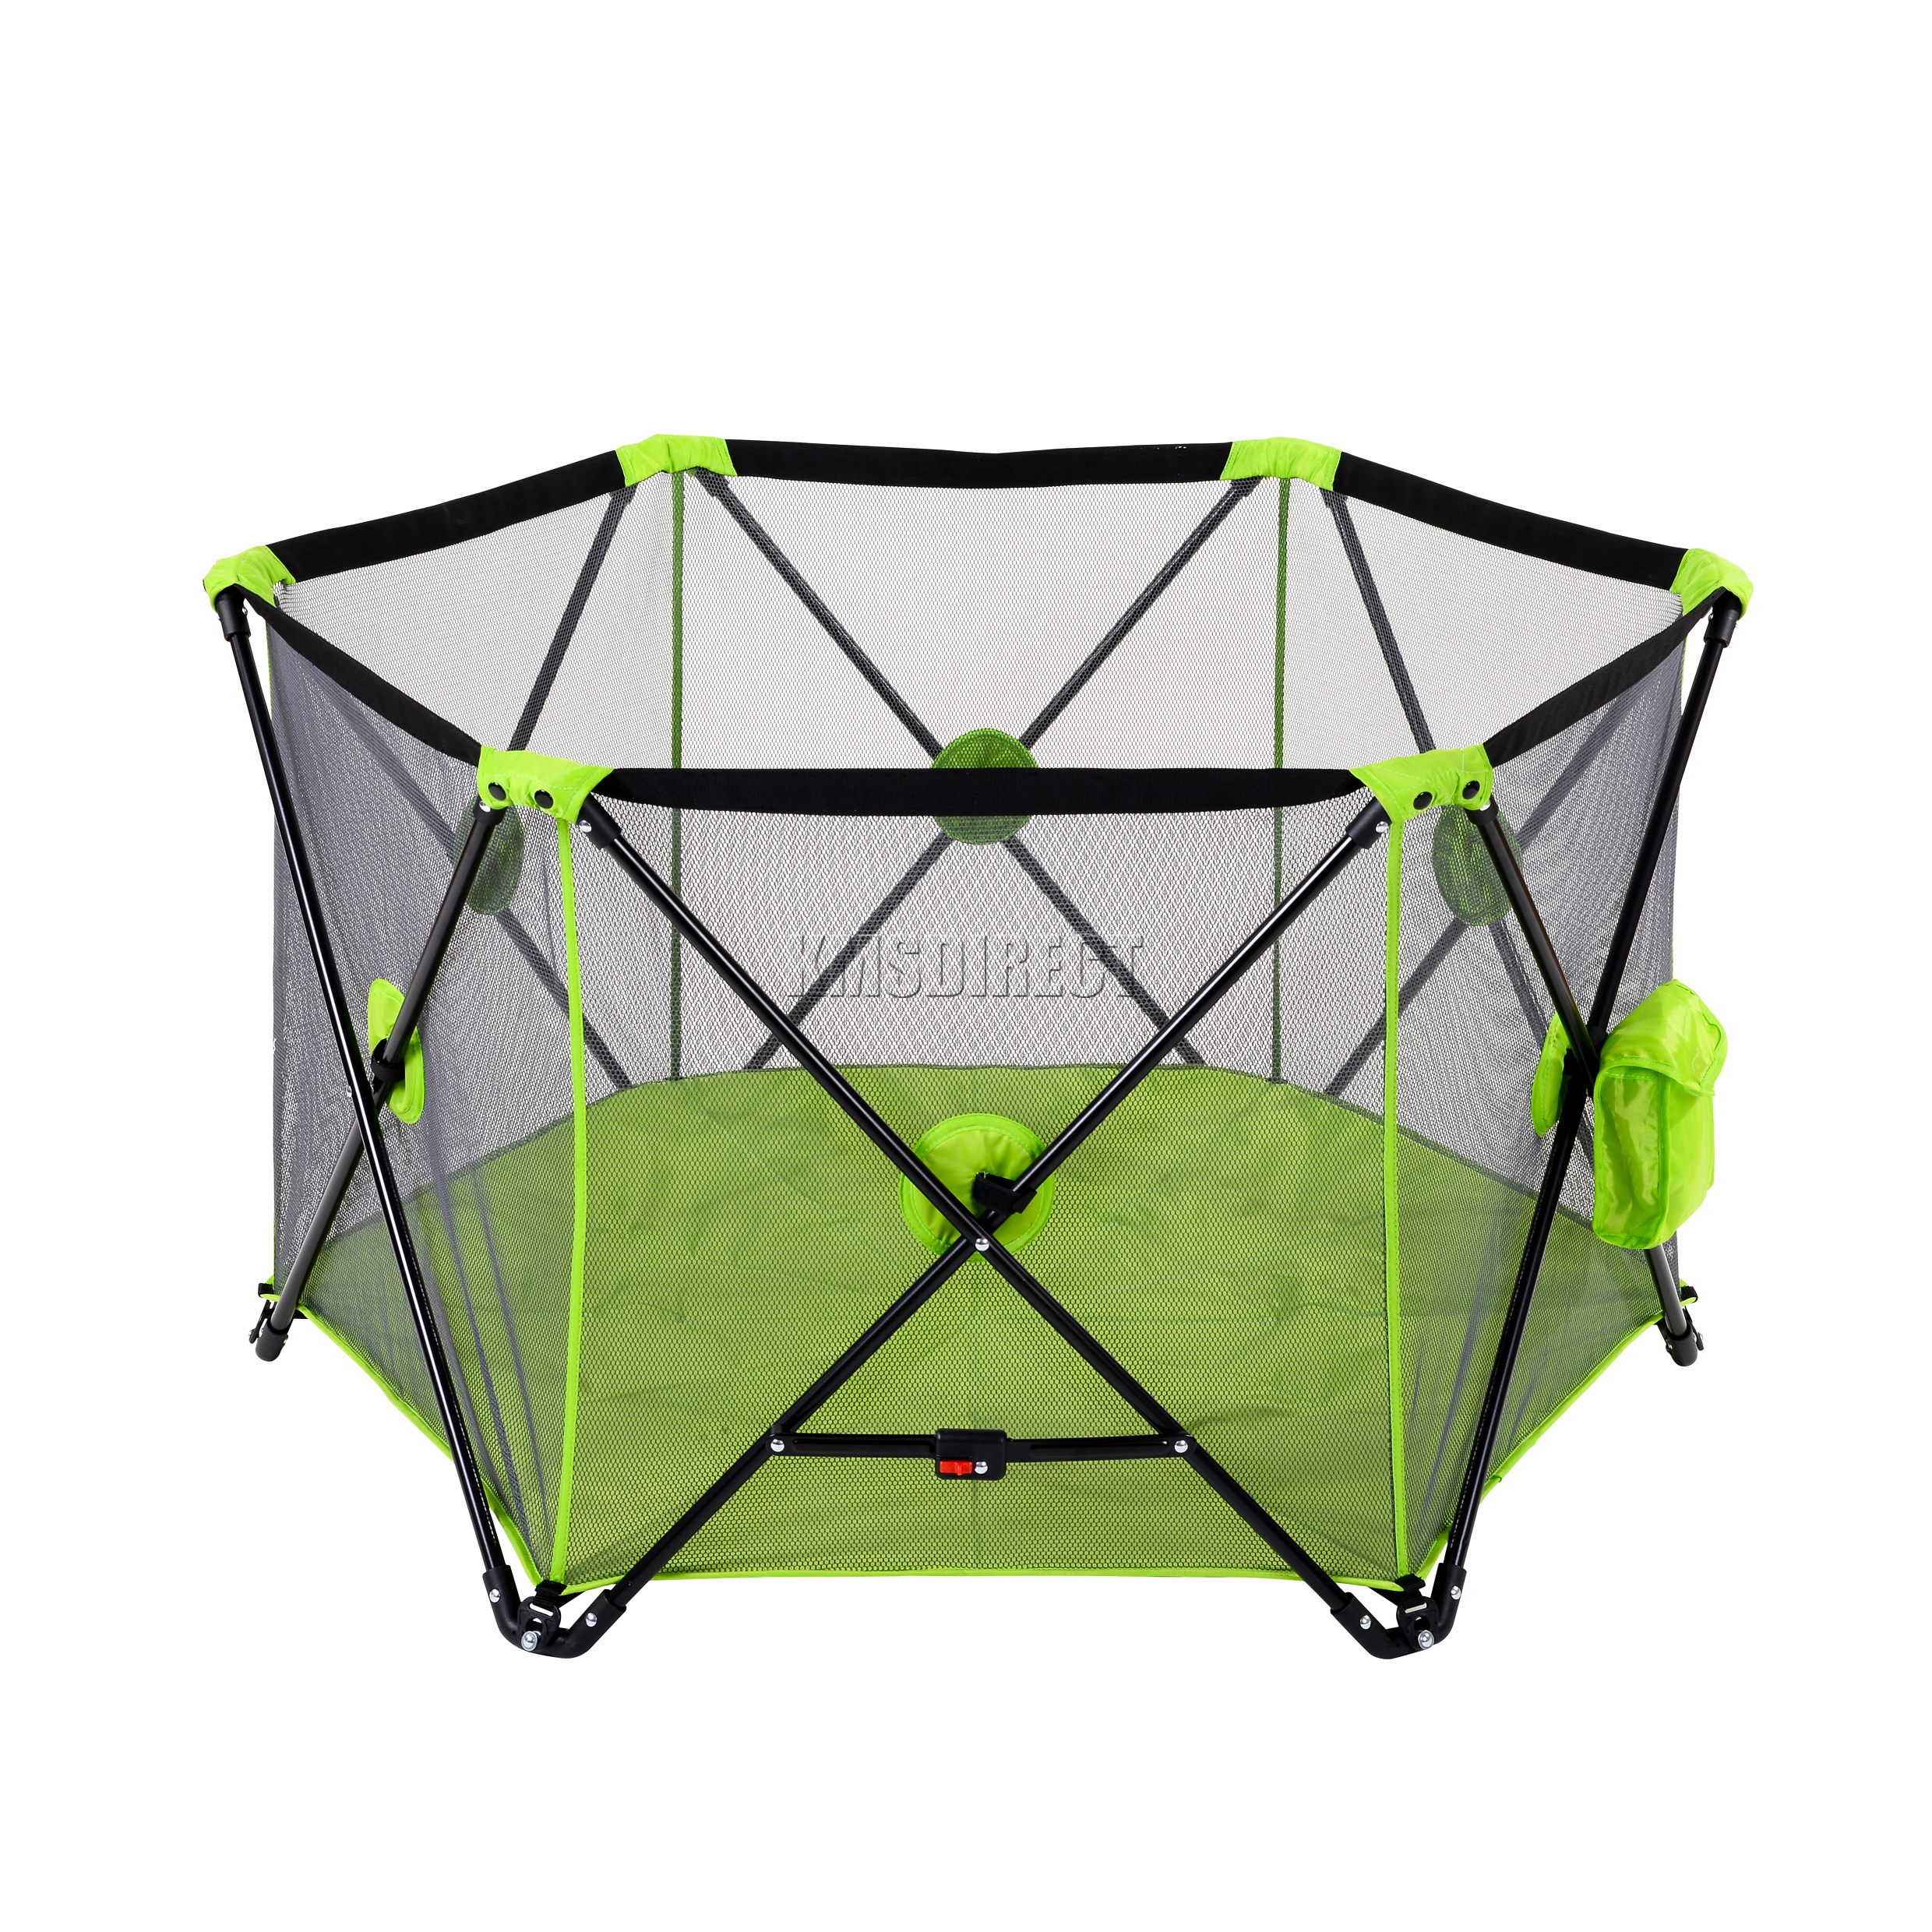 FoxHunter Portable Baby Pop Up Playpen Play Pen Yard 6 Sided With